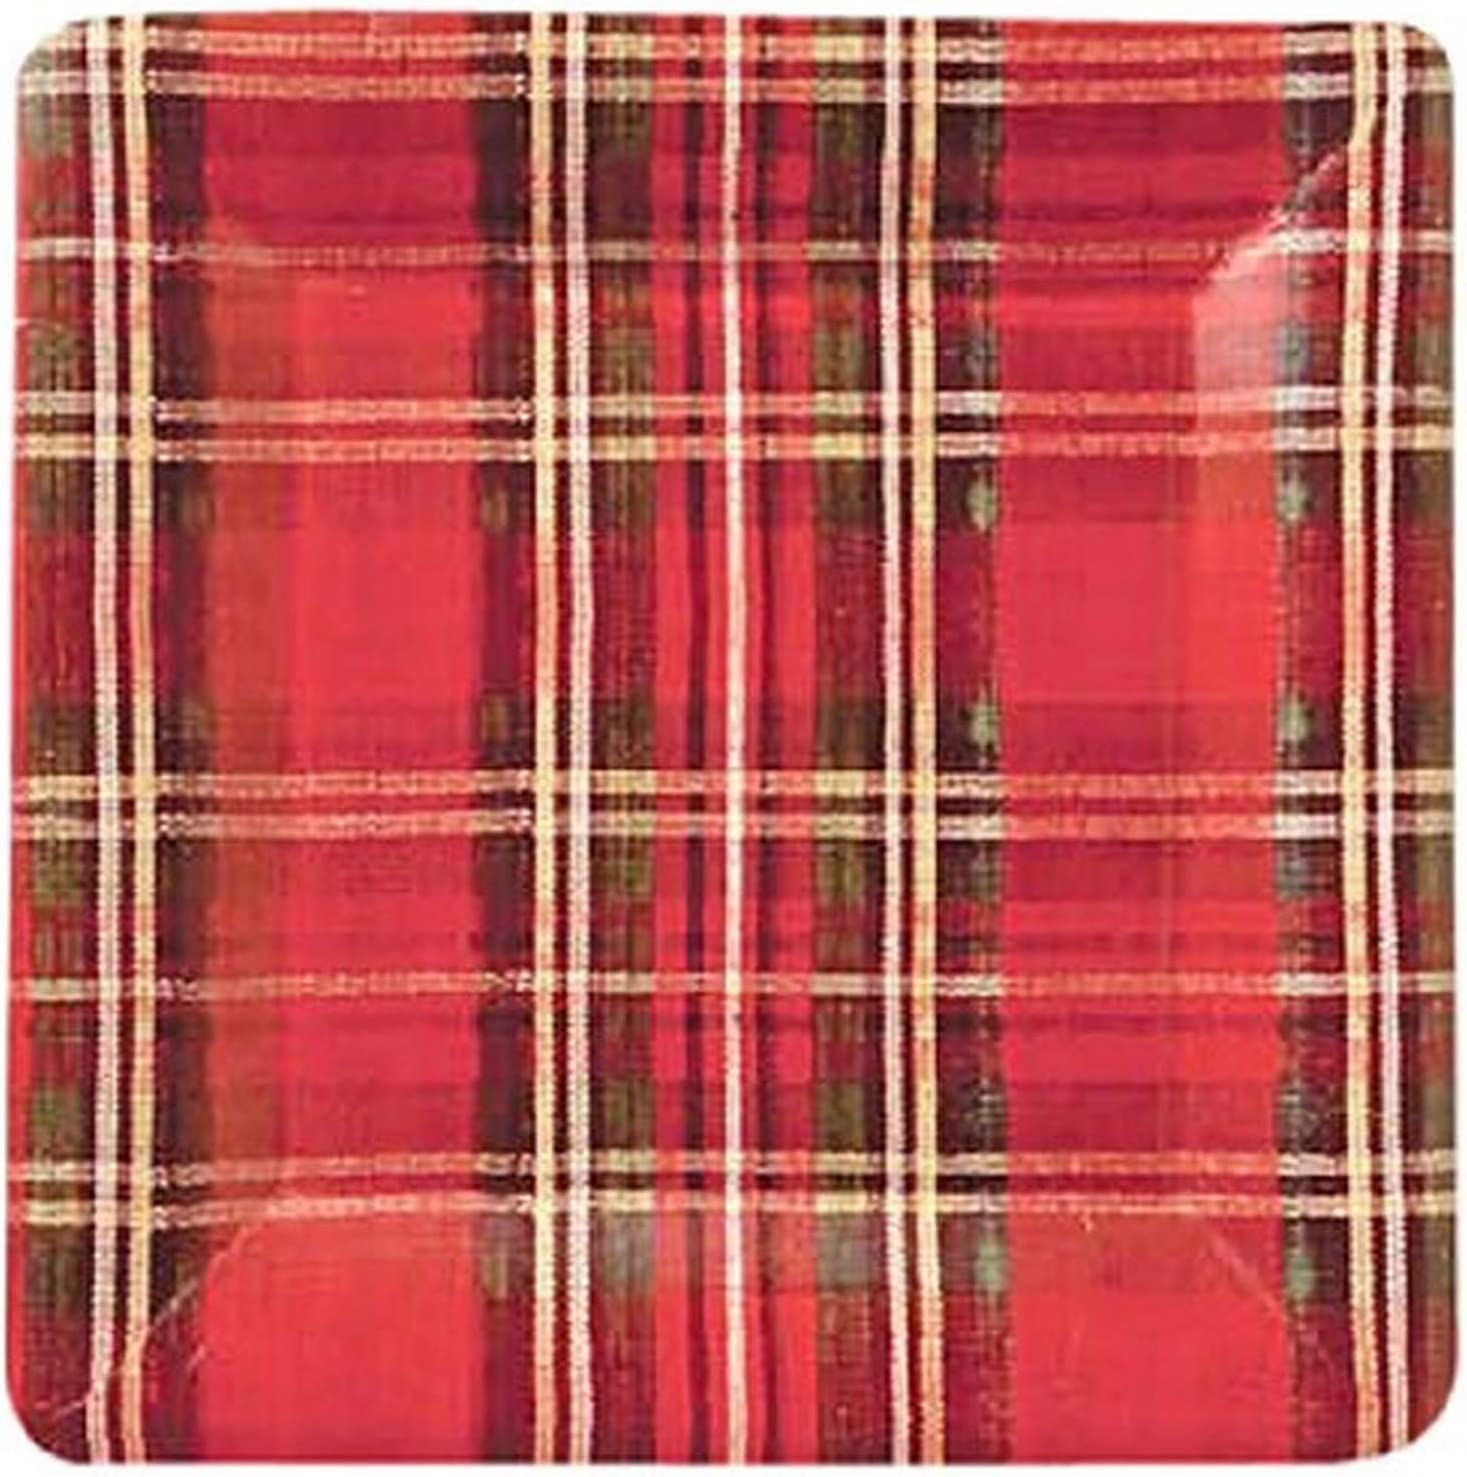 Ideal Home Range 8 Count Square Paper Plates, 7-Inch, Classic Red and Green Plaid Check